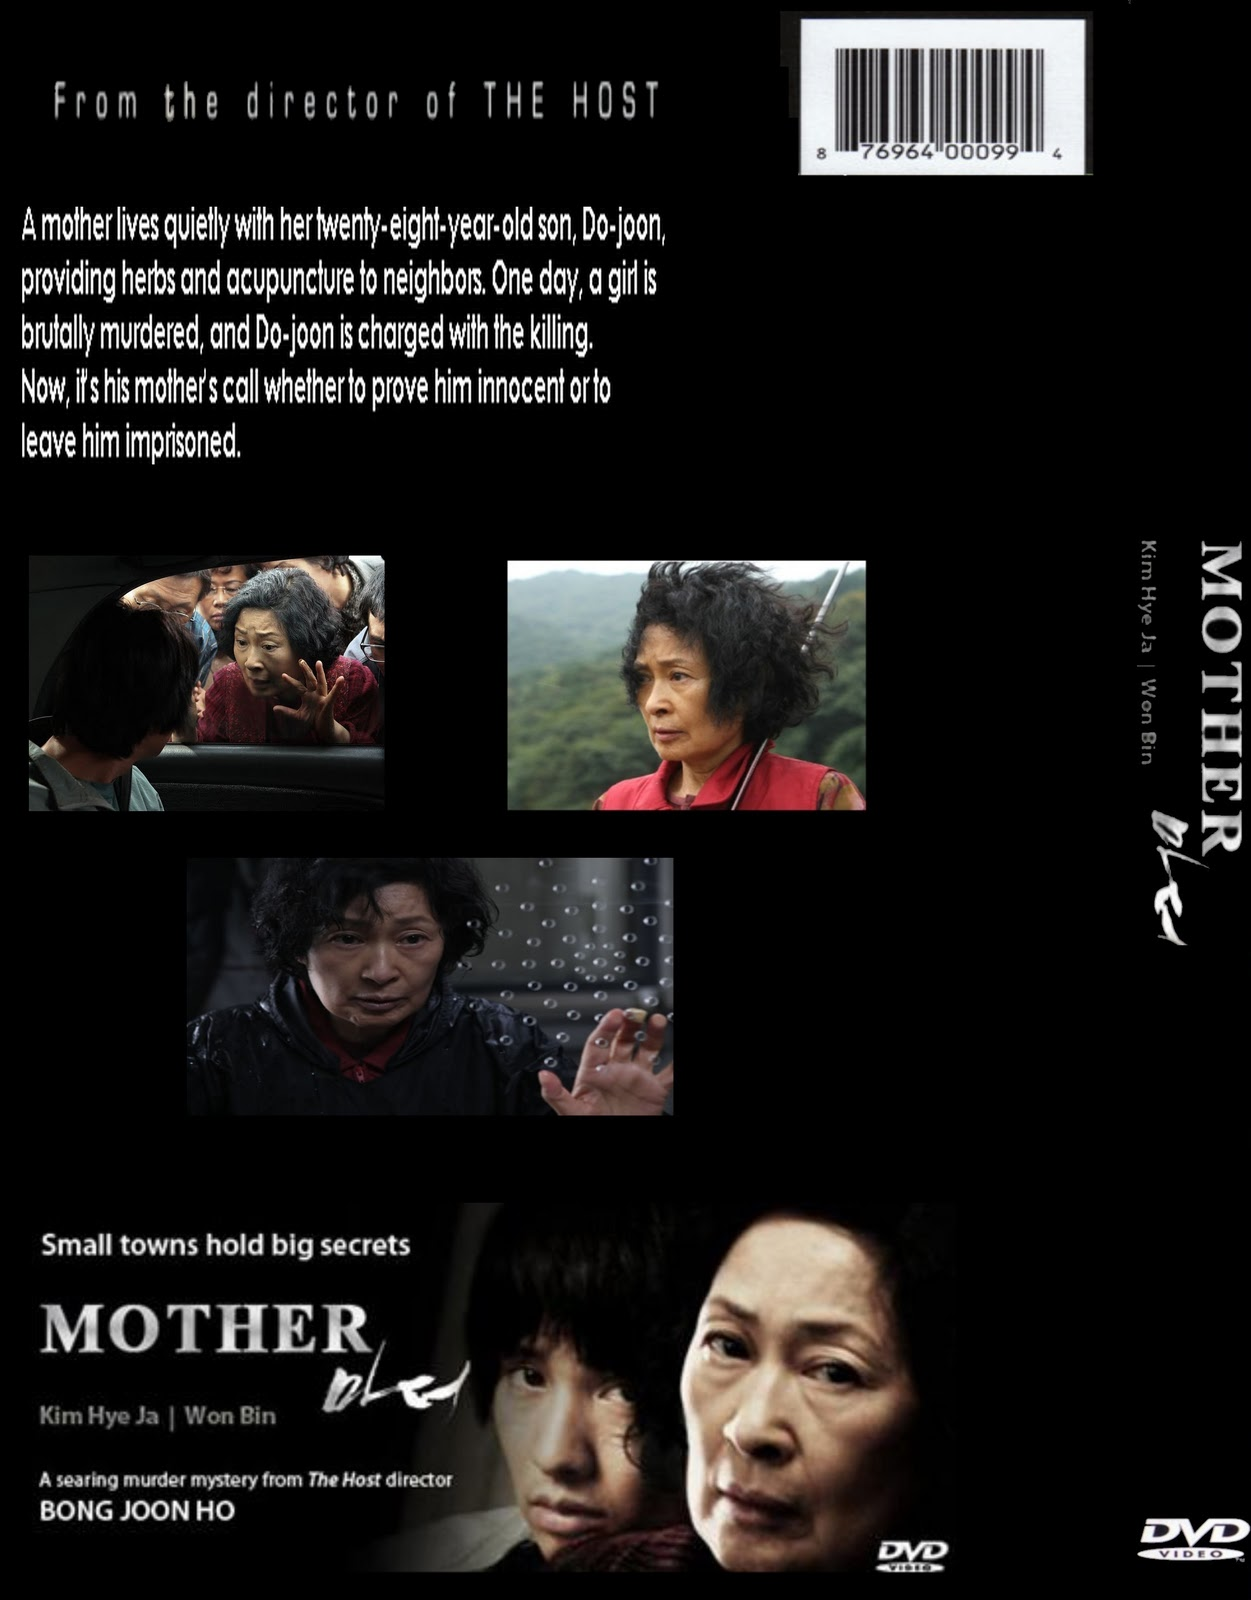 moviescreenshots top korean films best of korean movie list and the movie pace is slow and tension continues to build as a viewer you will begin to see the estranged relationship between mother and son